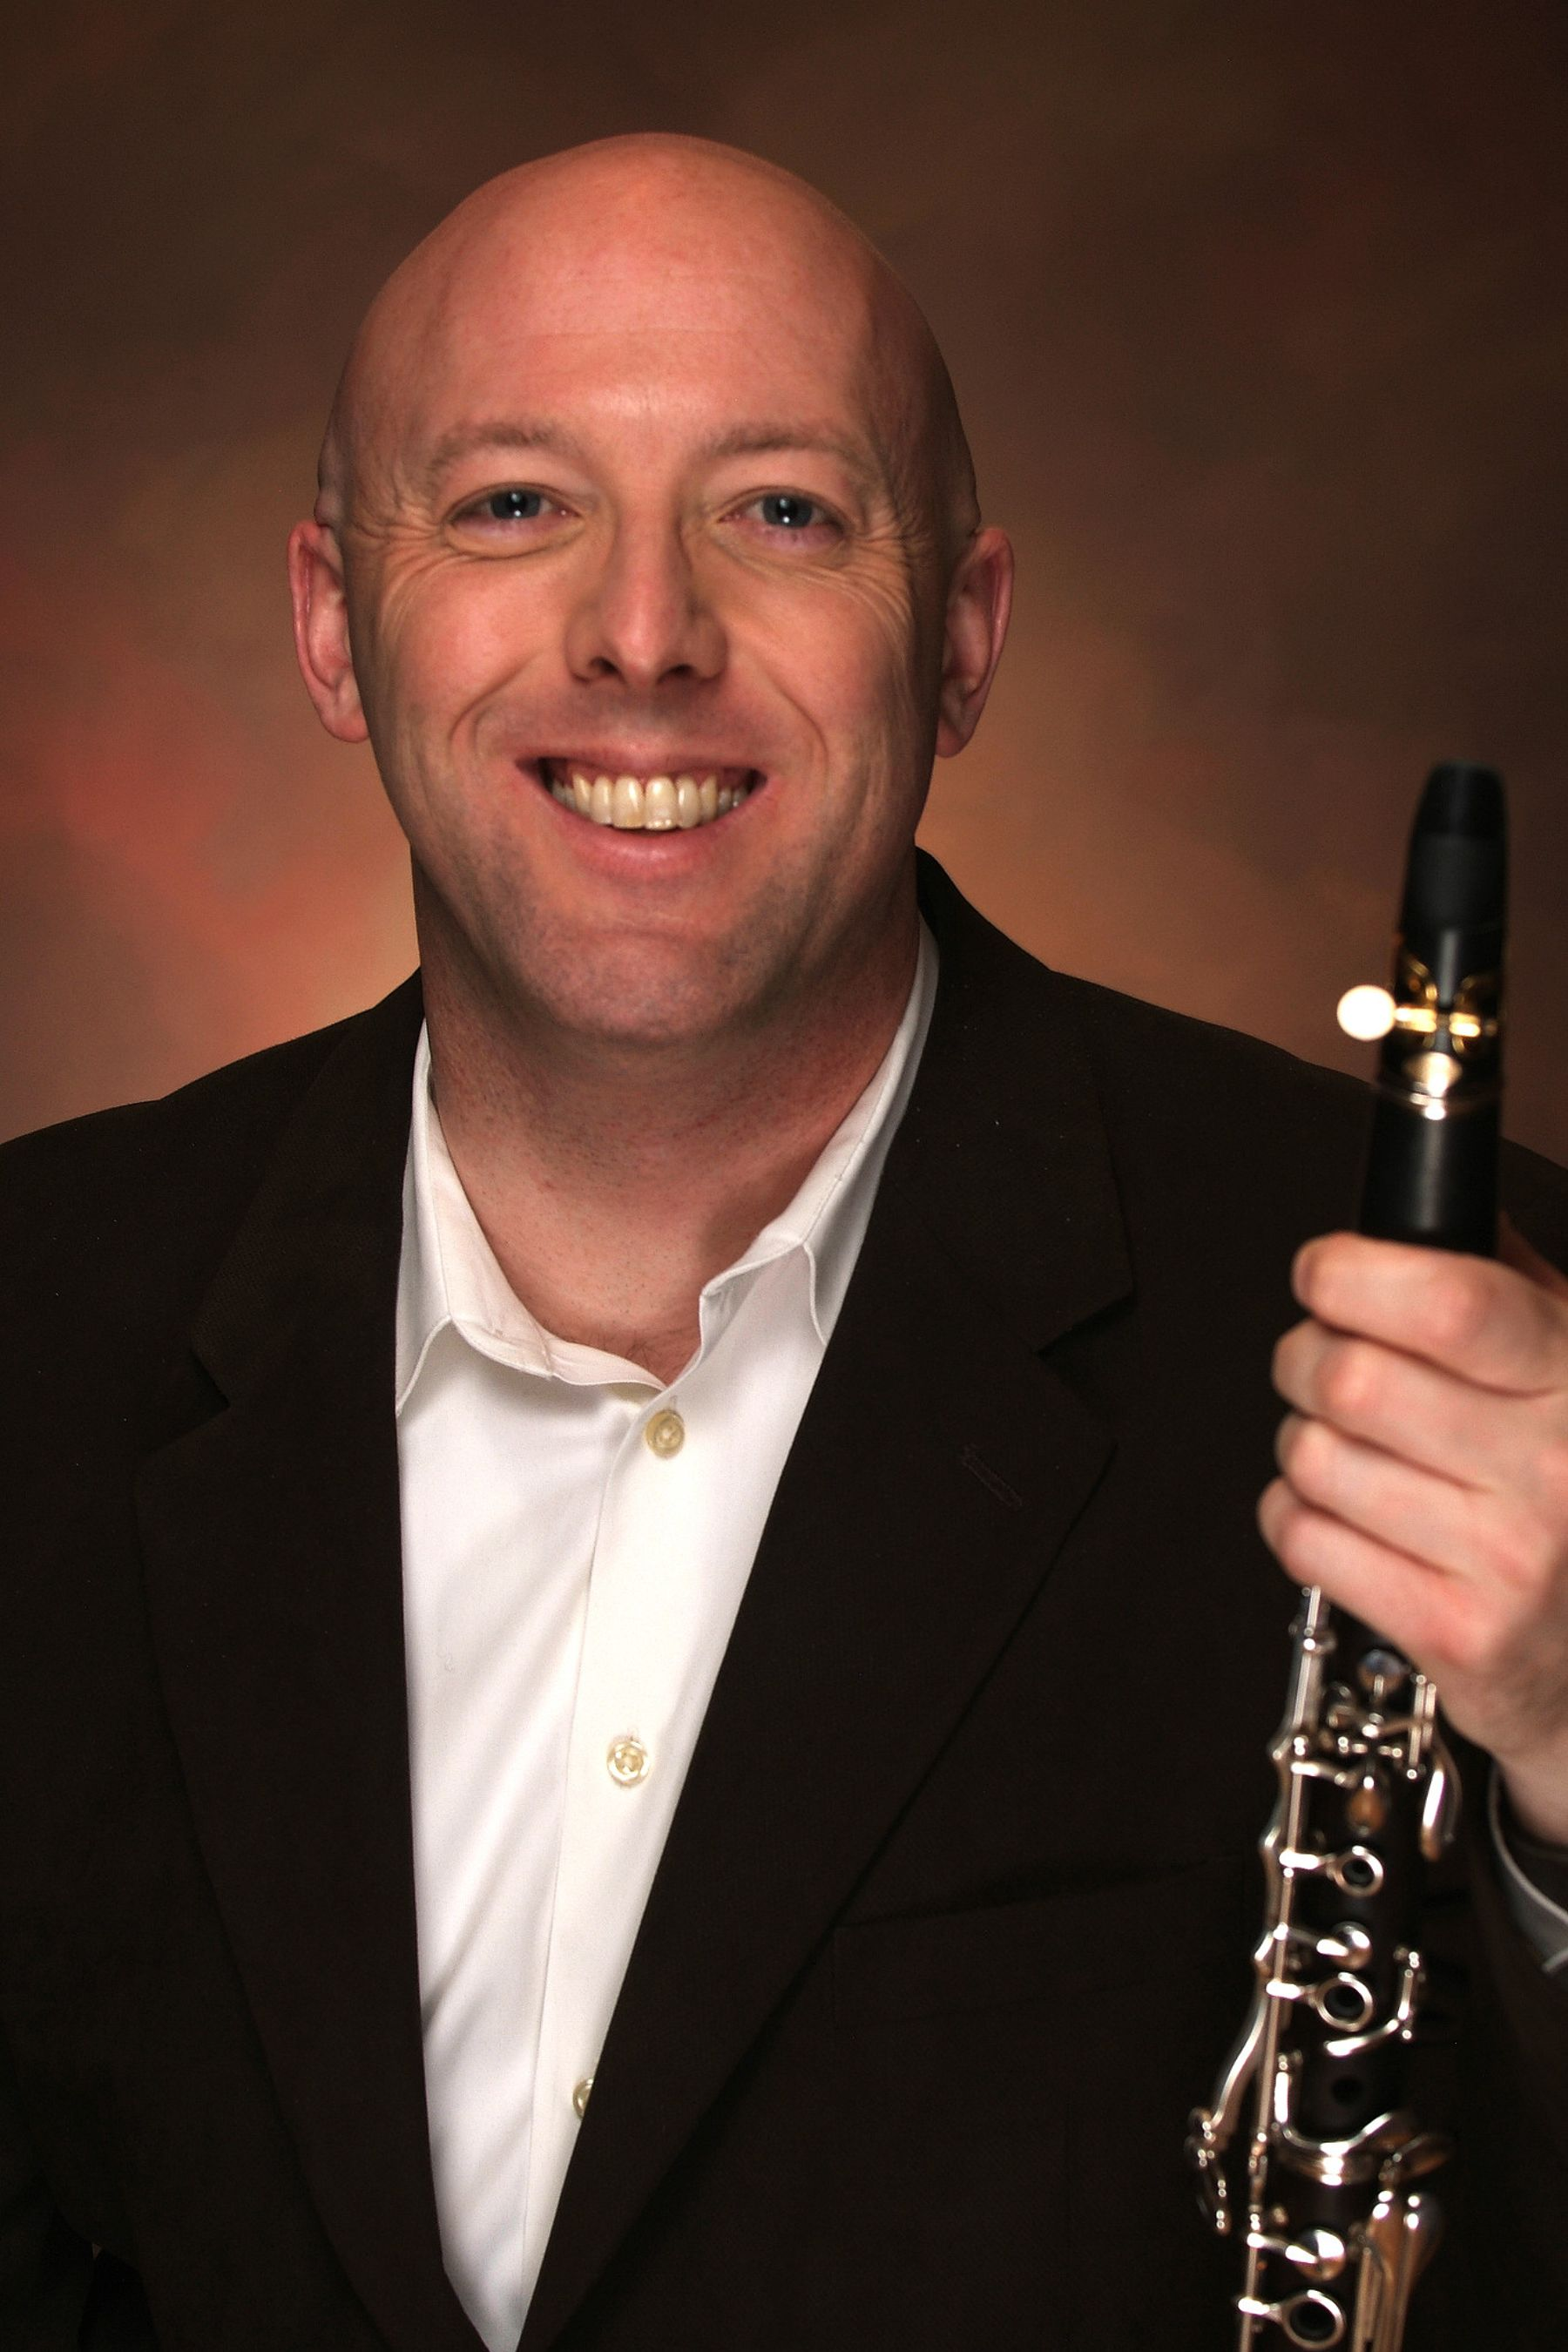 Jeremy Reynolds with clarinet